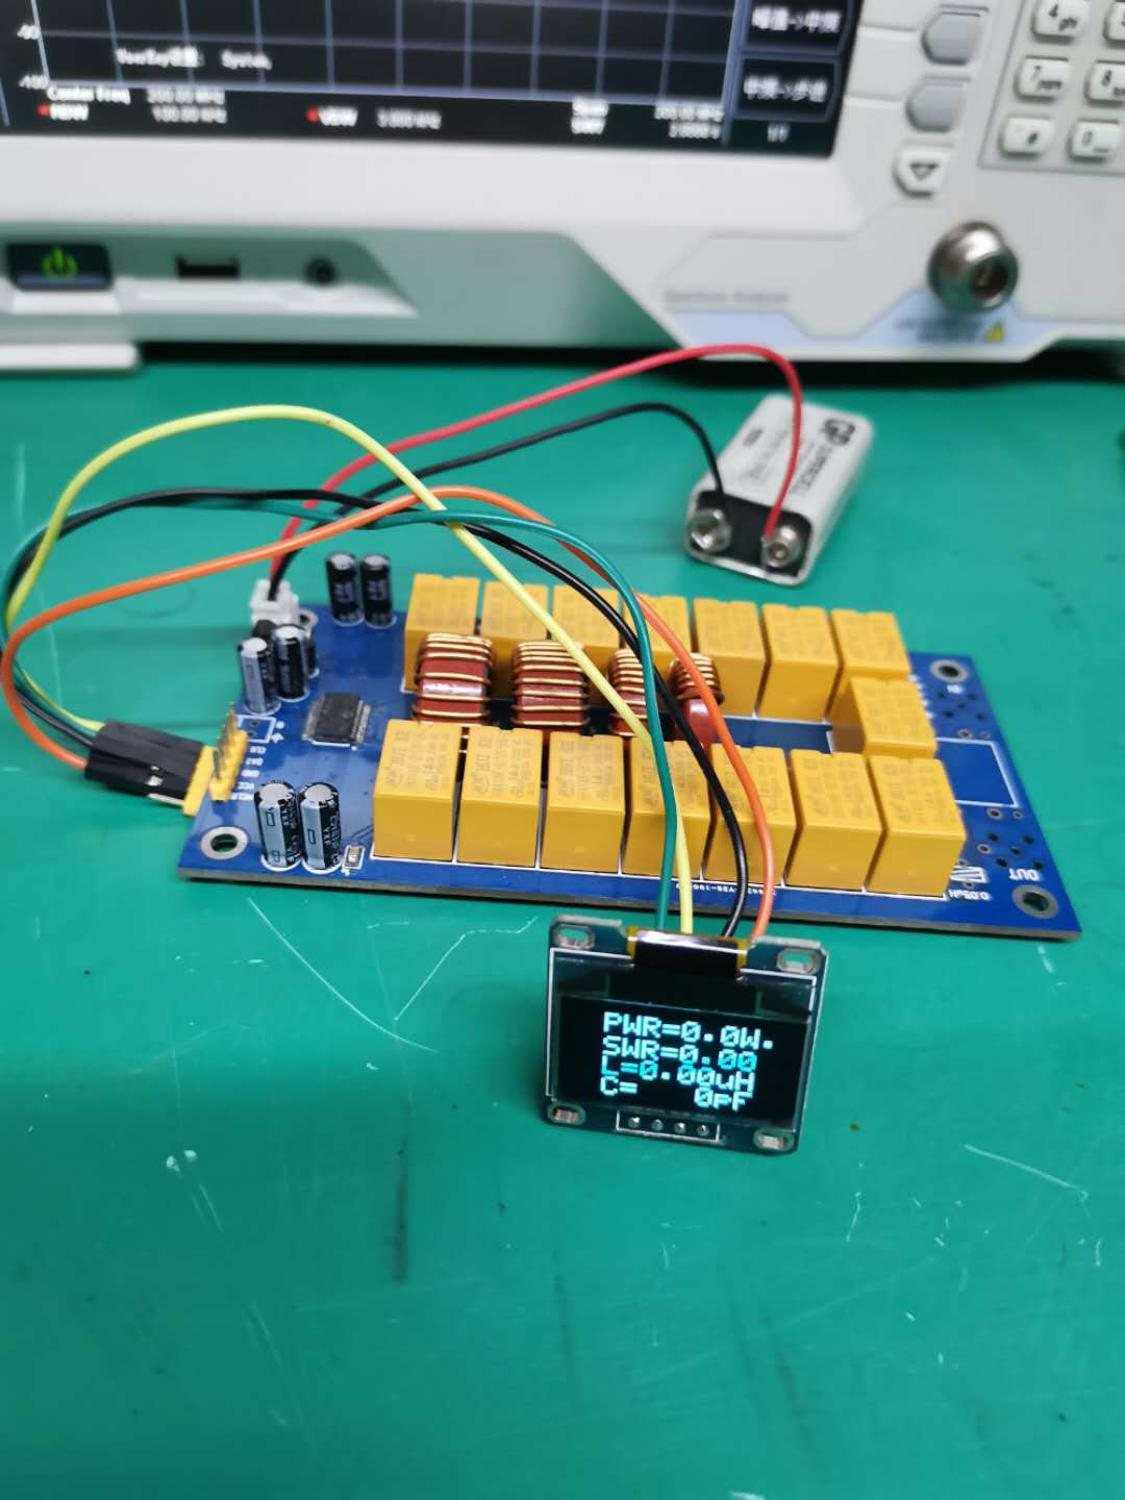 SMD Chip soldered   Firmware programmed    ATU-100 DIY Kits 1 8-50MHz ATU-100mini Automatic Antenna Tuner by N7DDC 7x7   OLED